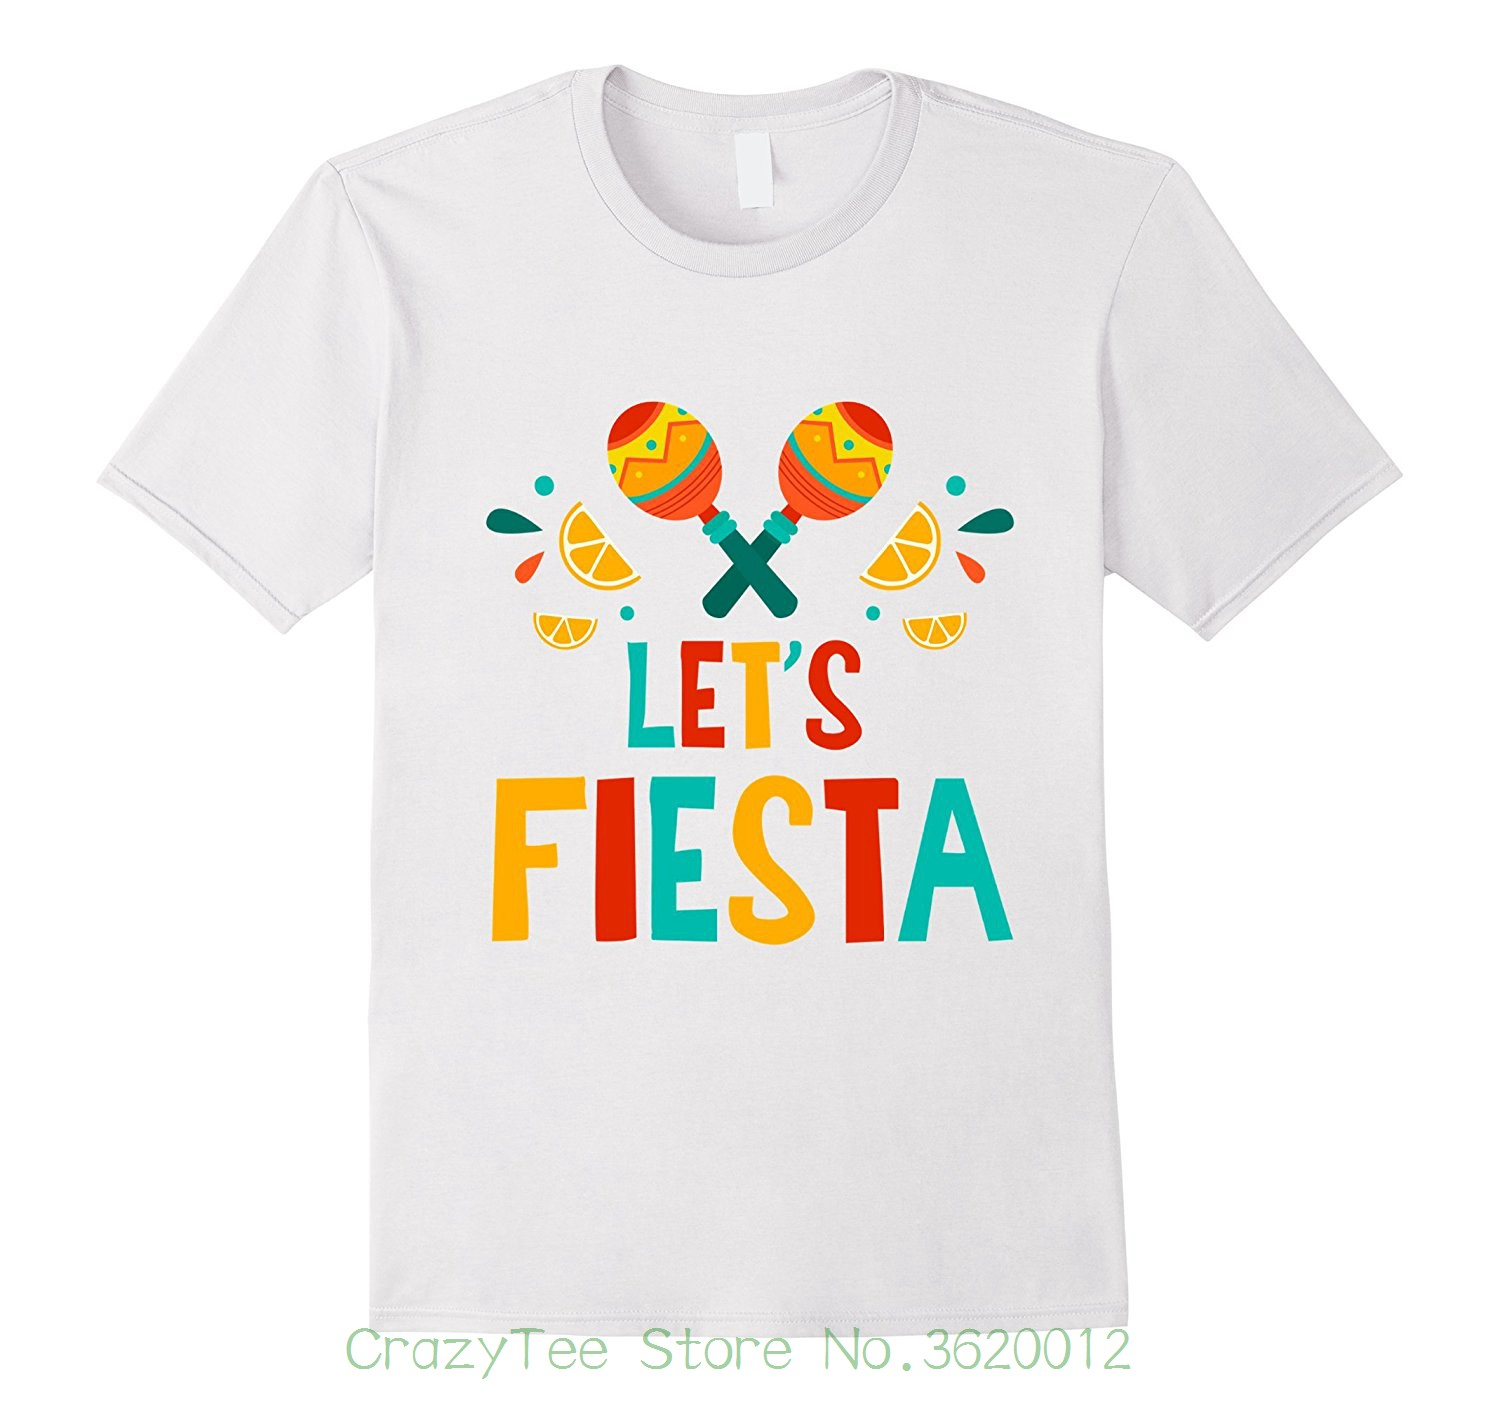 2fb3156579ab4 US $9.9 |Short Sleeves New Fashion T shirt Men Clothing Fiesta Funny Cute  Mexico Mexican Party T Shirt-in T-Shirts from Men's Clothing on ...